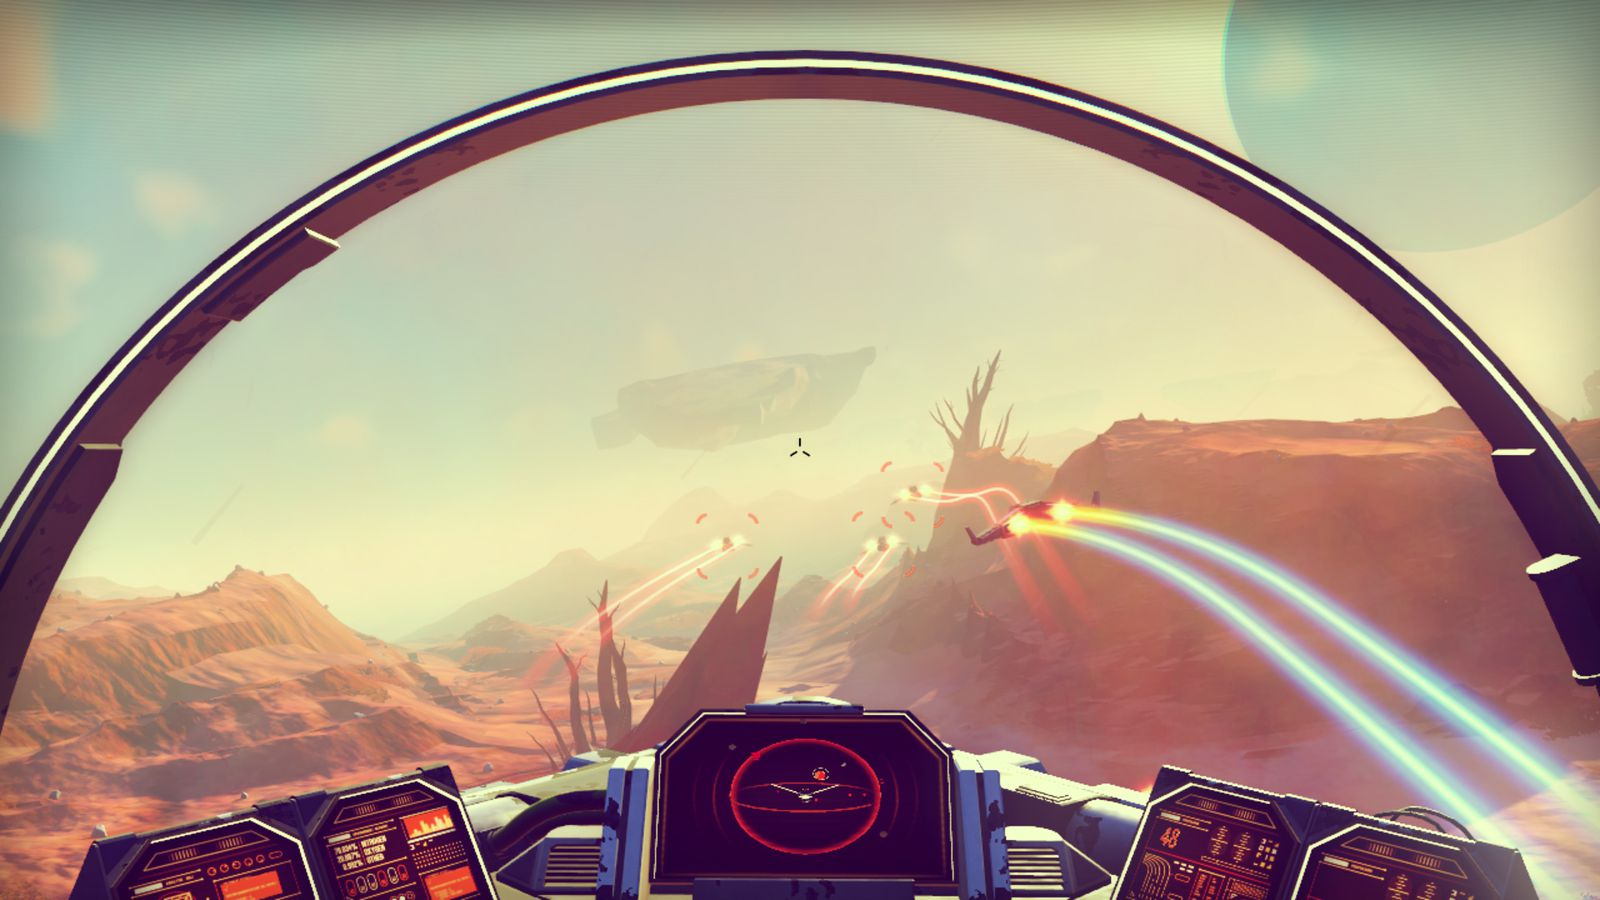 Hacker tweets 'No Man's Sky was a mistake' from Hello Games account